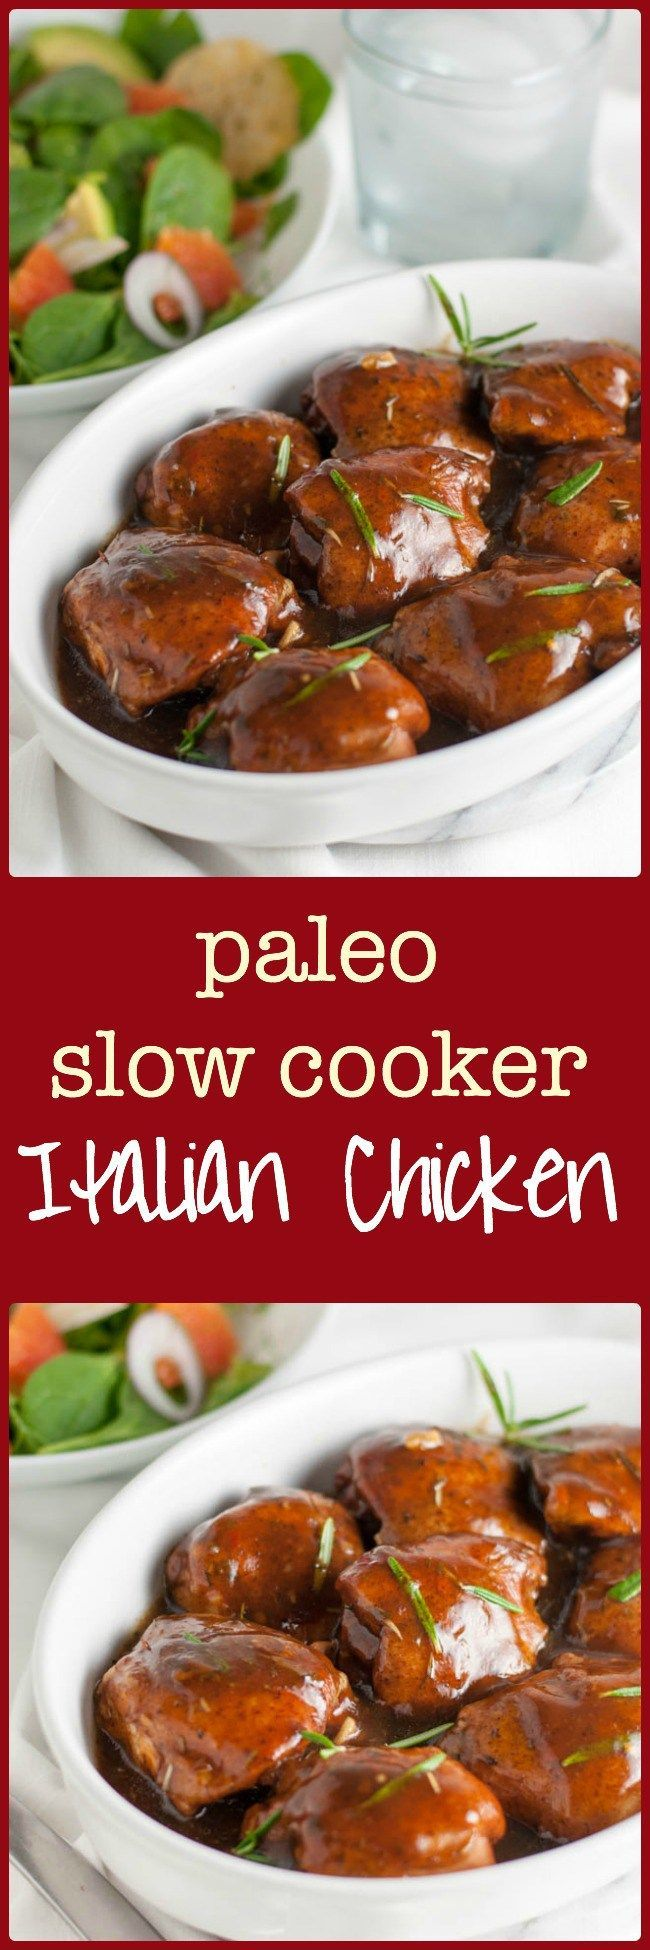 Easy Paleo Italian Chicken with Balsamic and Herbs. One-step recipe ...